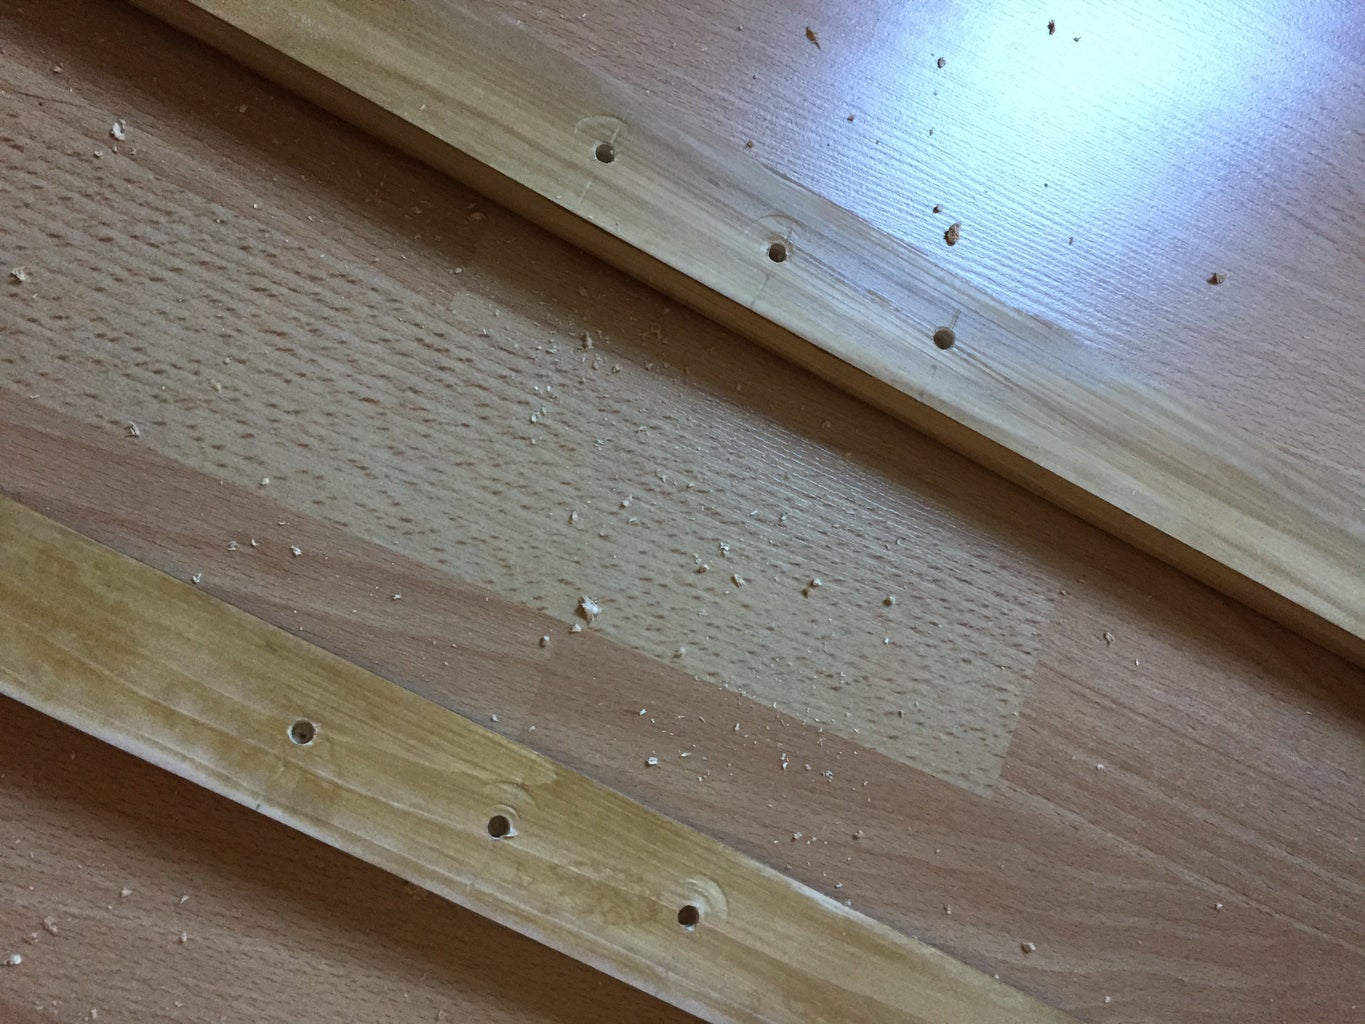 Drilling the Holes for the Adjustable Shelves